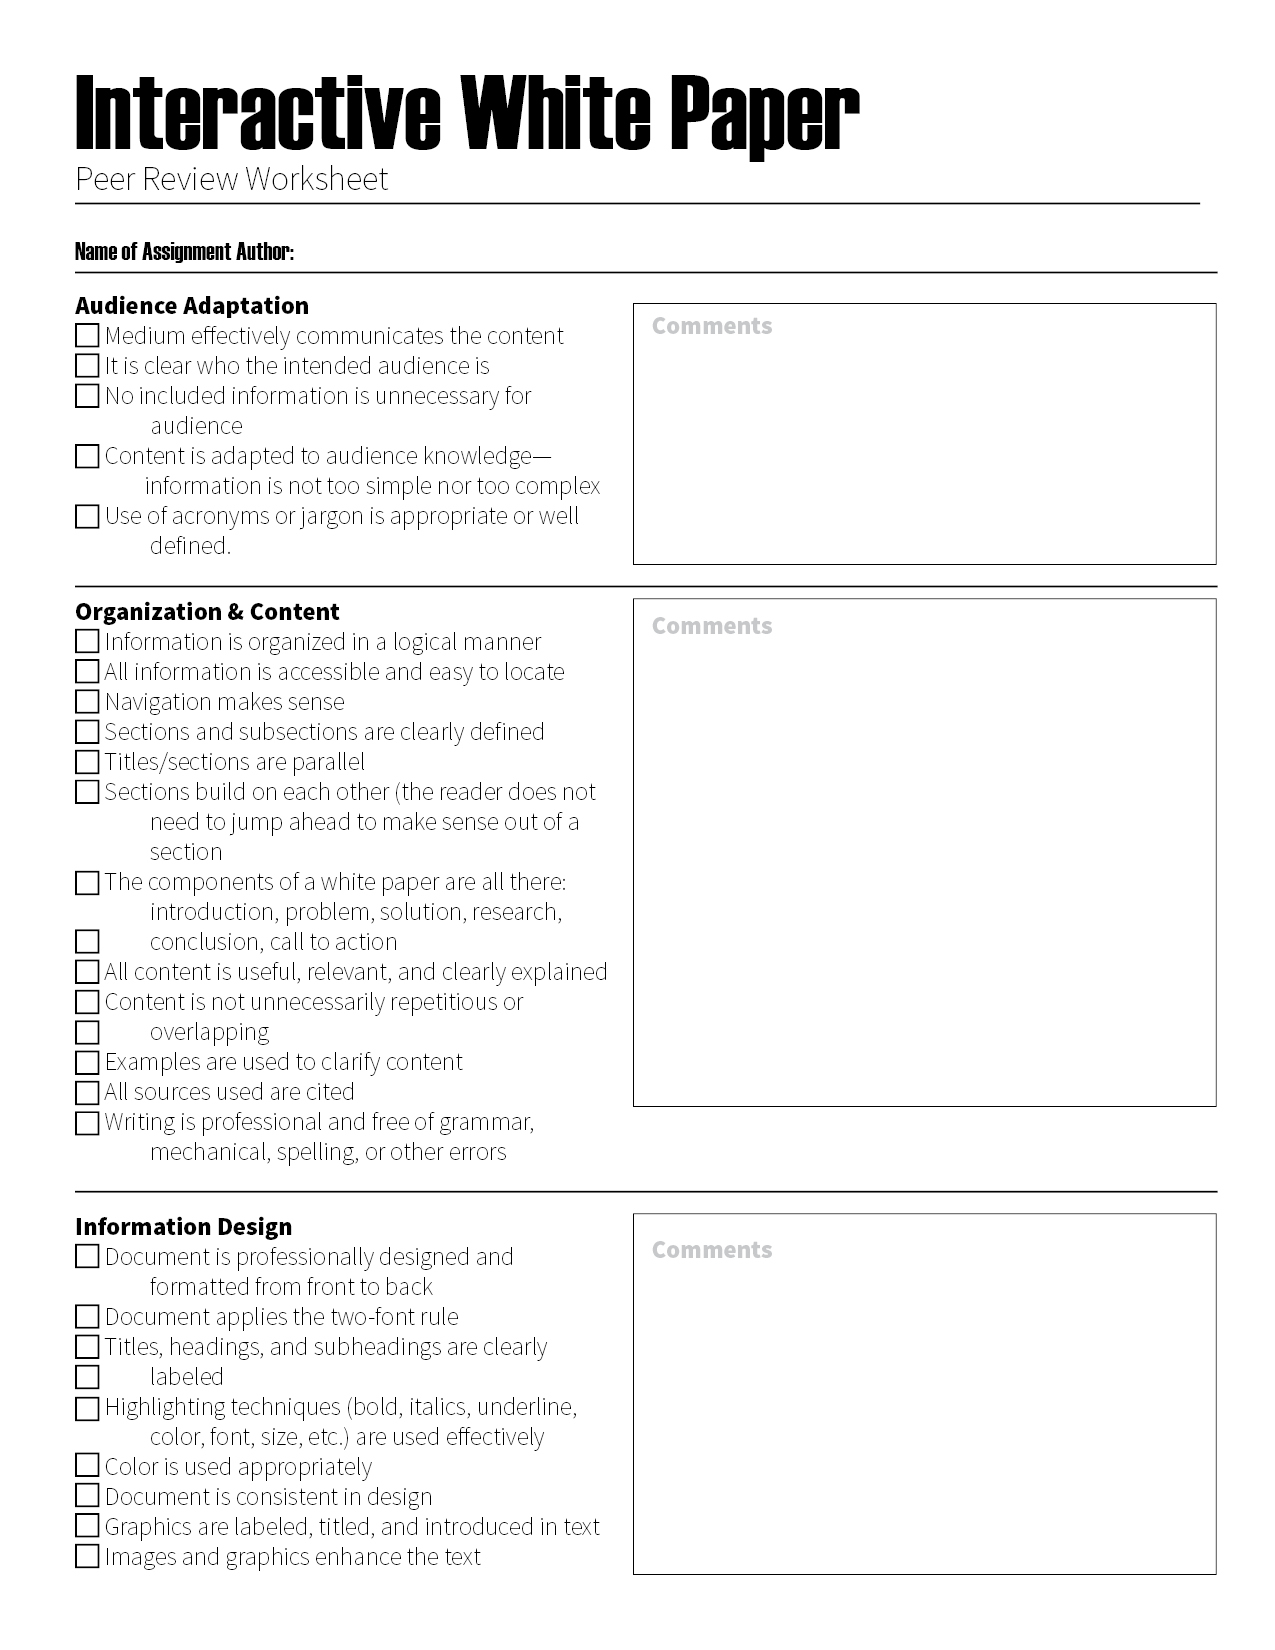 peer review sheet This peer review template is intended for organizations that include 360-degree feedback in their evaluations competencies are rated using a number scale to provide a simple, quantitative look at performance.